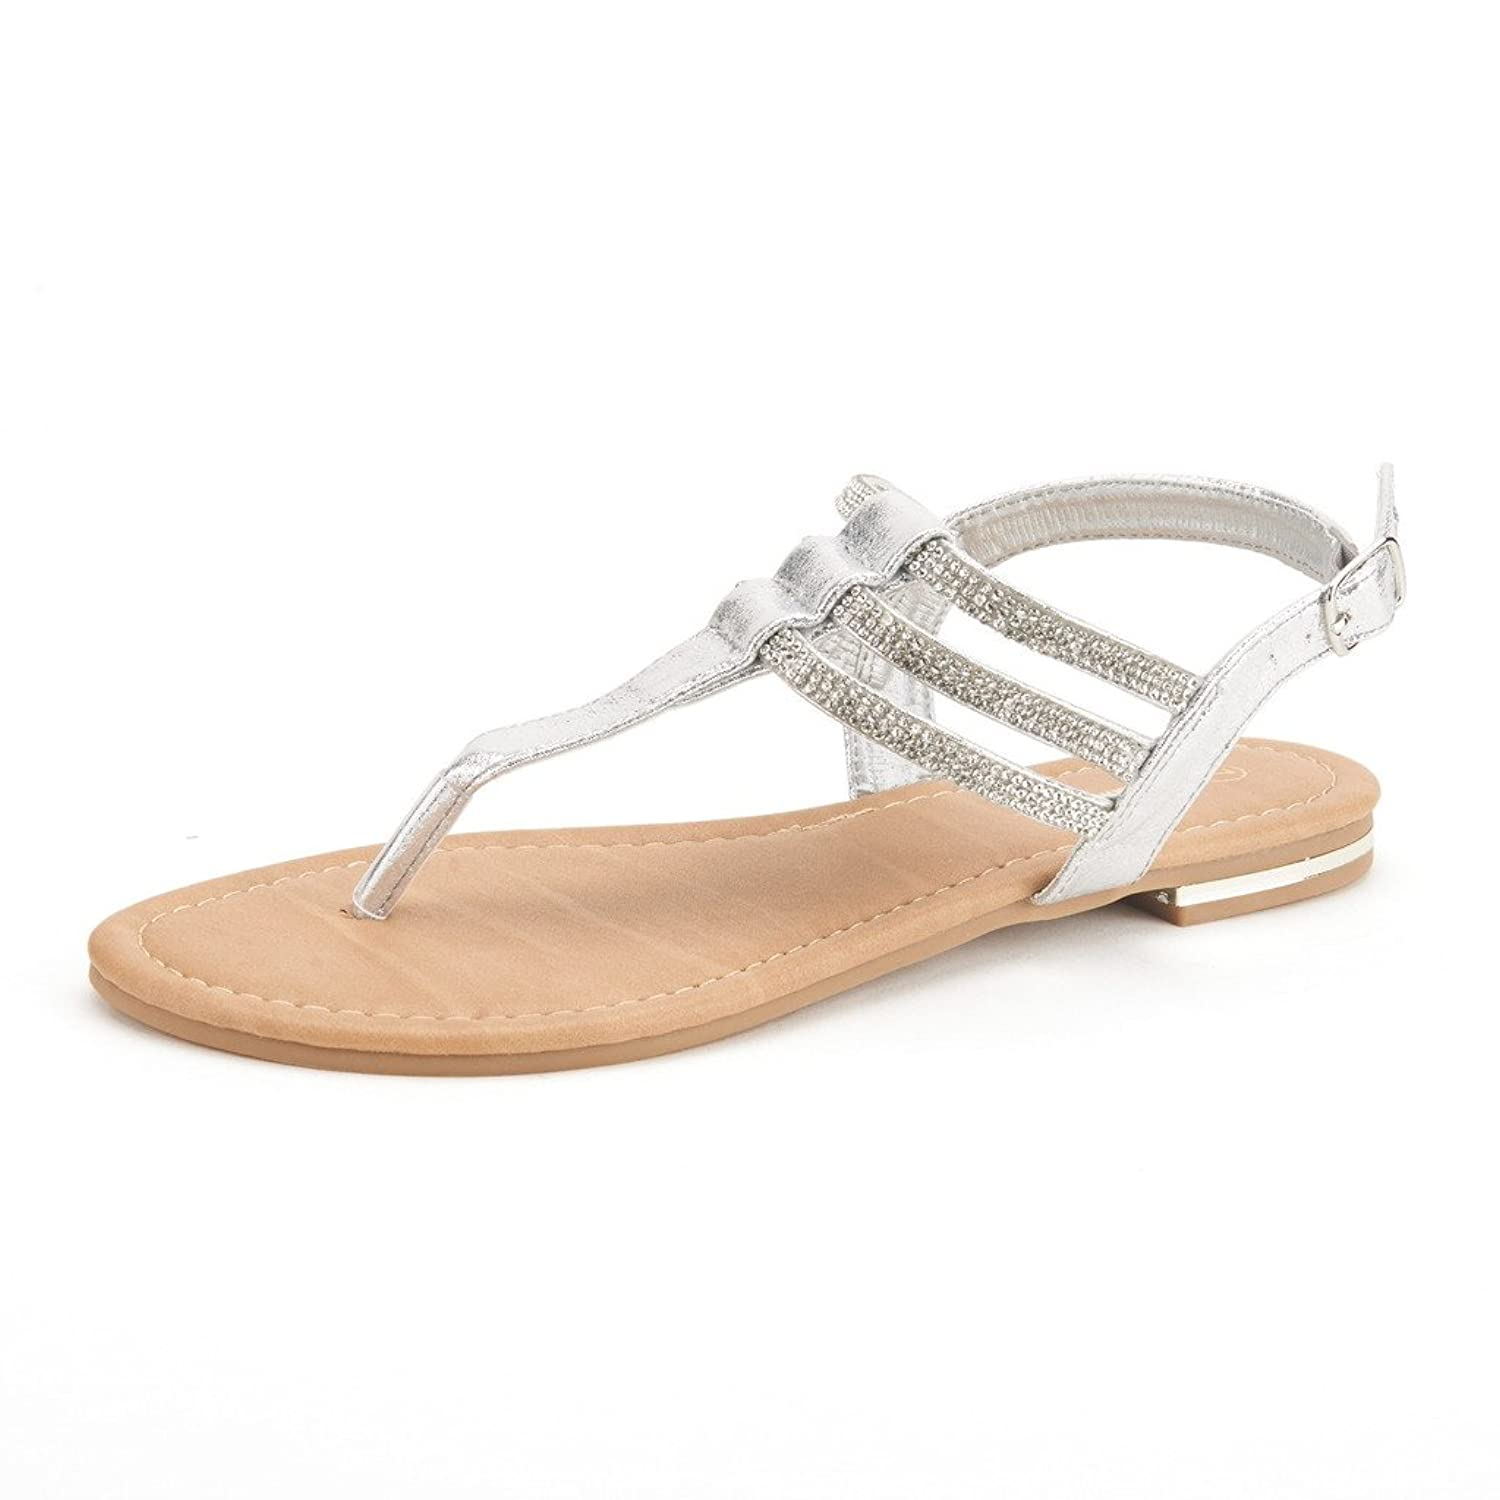 f7e400b7eed DREAM PAIRS Estelle Women s Casual Strappy RhinestonesThong Buckle Strap  Gladiator Flat Sandals